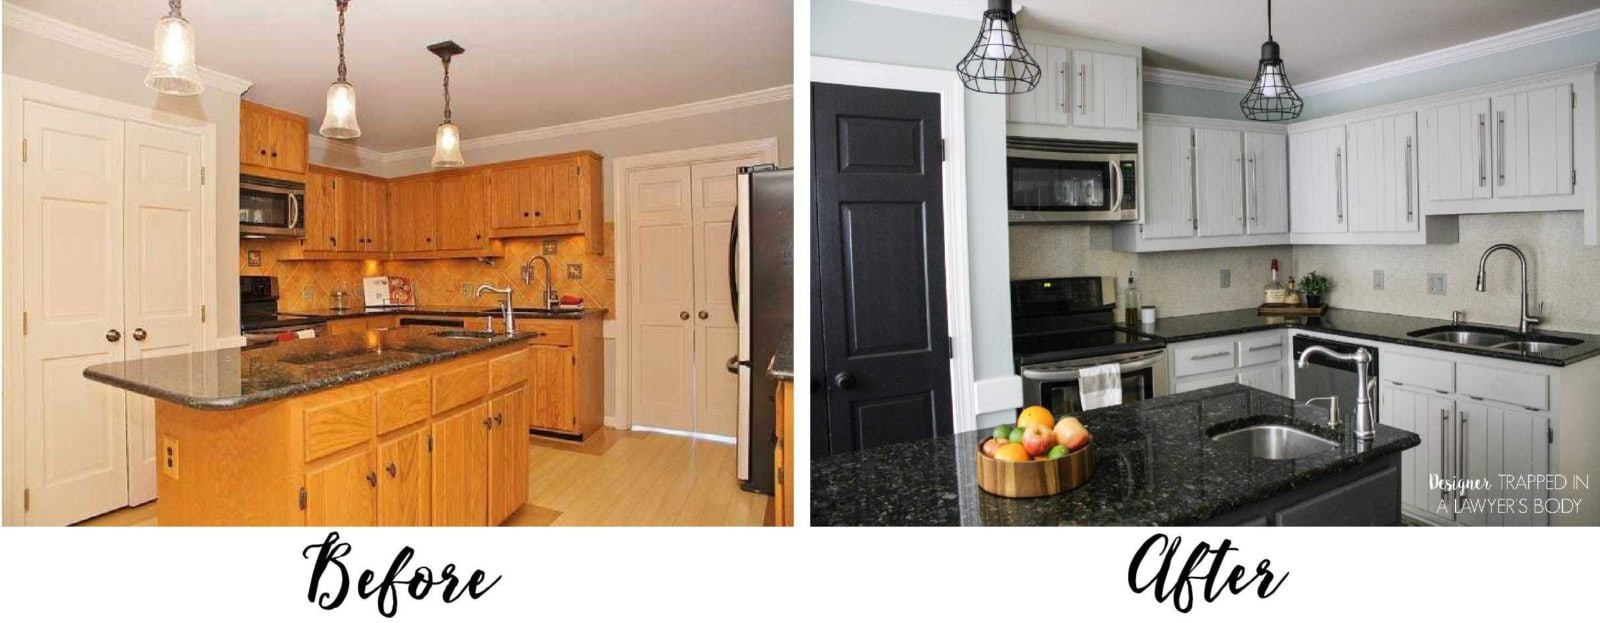 ... has successfully painted my kitchen cabinets, so let's take a look at some more successful cabinet transformations using different types of paint from ...